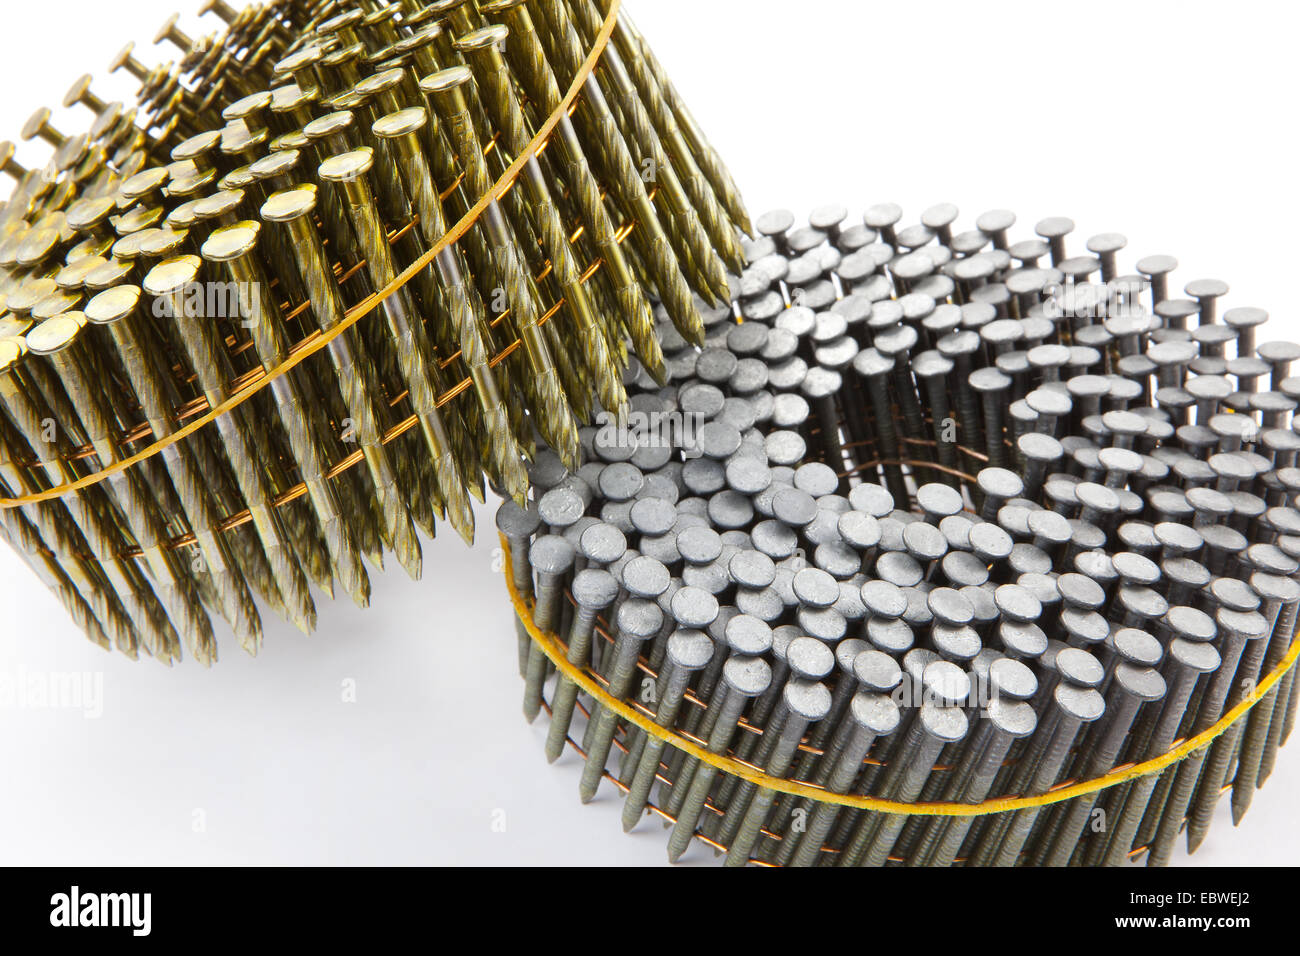 Hardware nail gun nails in coil pack bundle, for compressed air nail ...